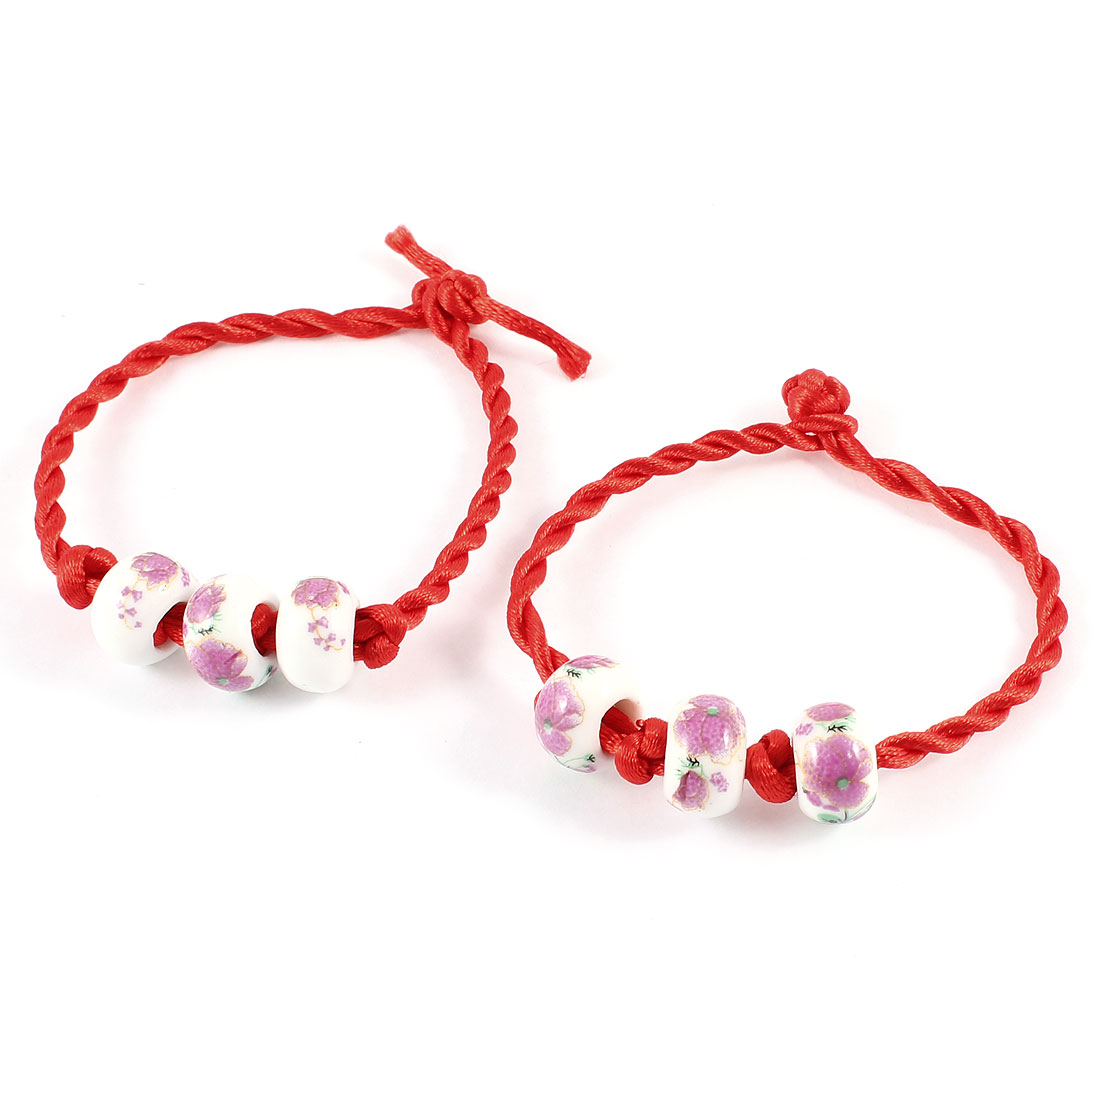 2 Pcs Flower Print Plastic Beads Link Red Nylon Twisted String Bracelet